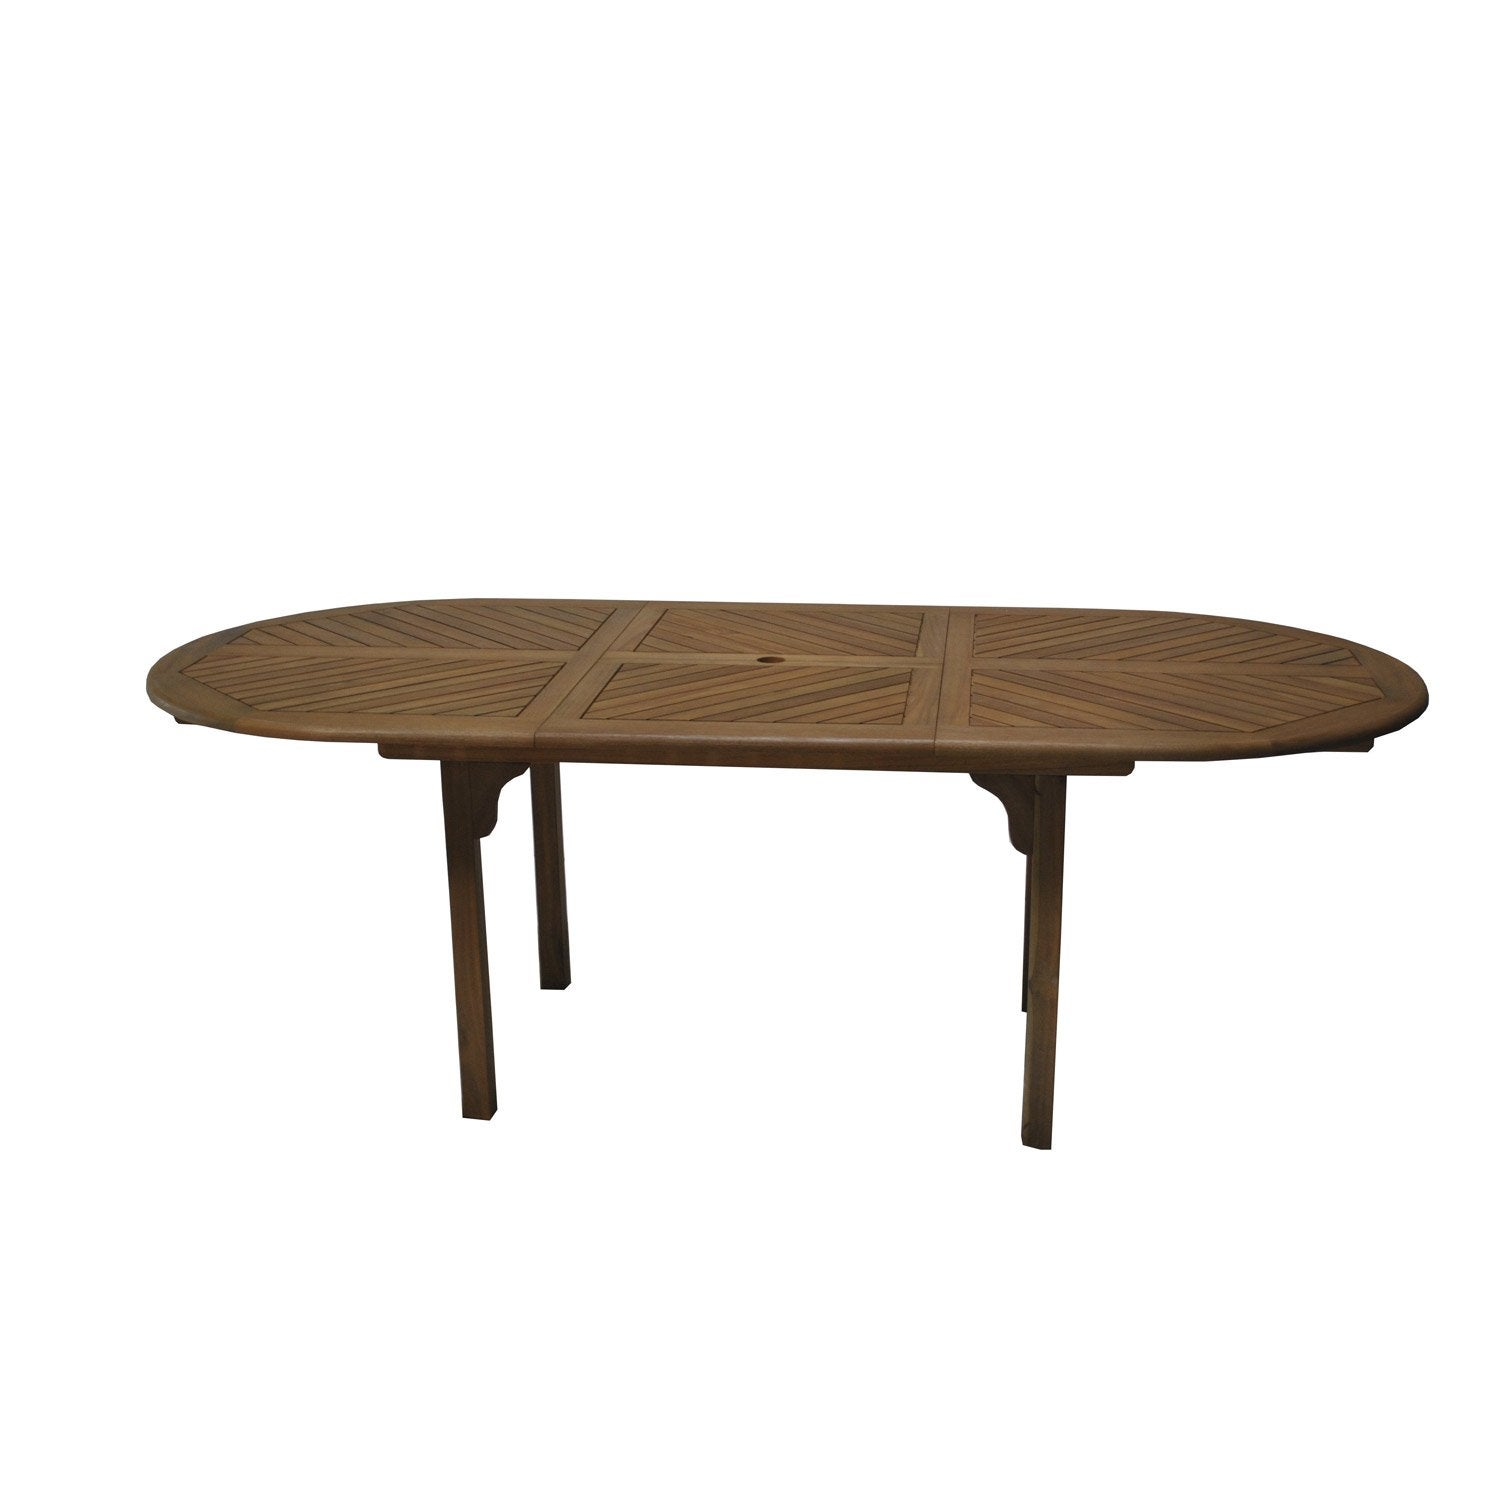 Table de jardin durban ovale look teck 6 8 personnes leroy merlin - Leroy merlin table jardin ...